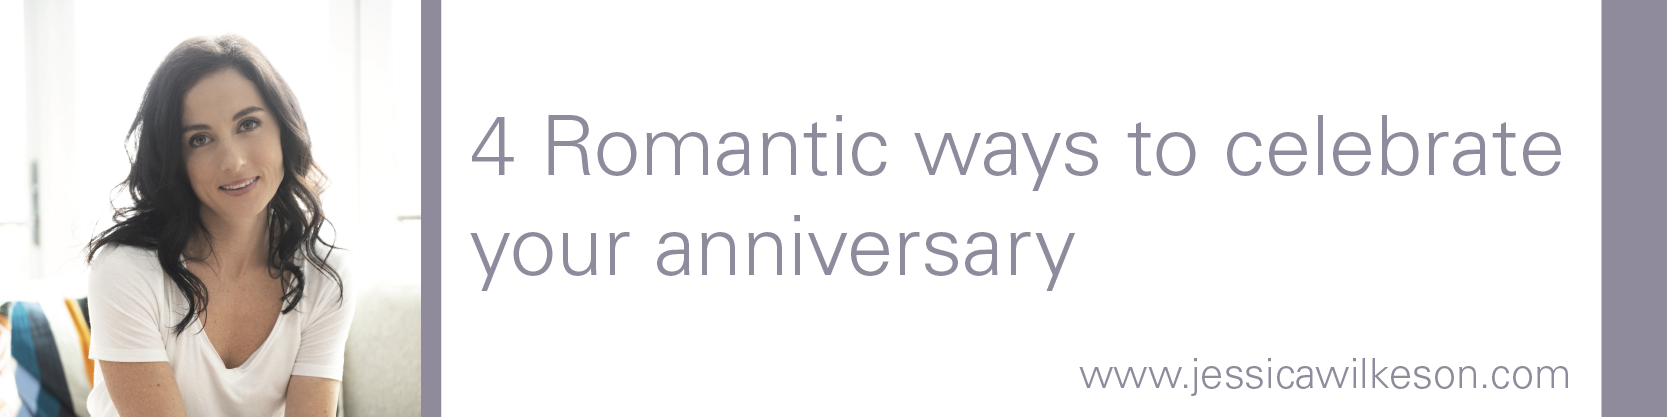 4 romantic ways to celebrate your anniversary